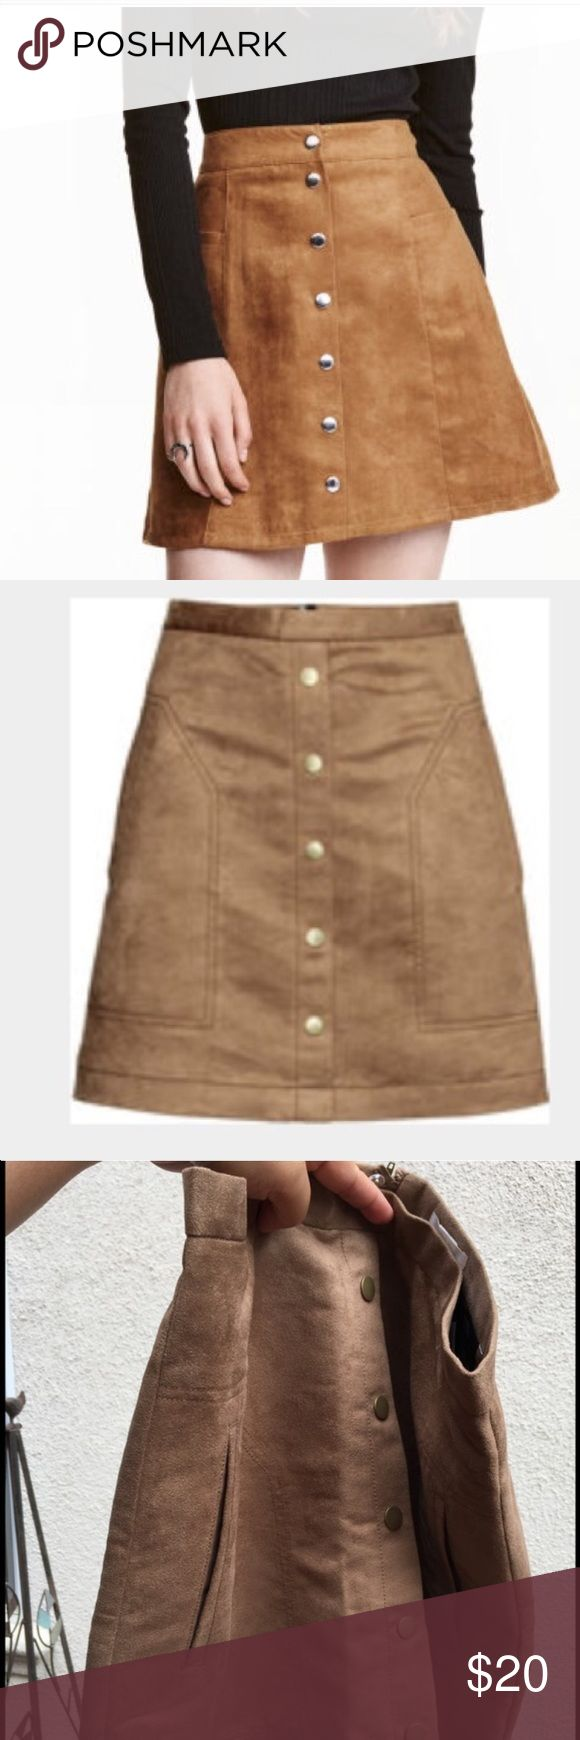 Light brown suede skirt Light brown suede skirt H&M Skirts